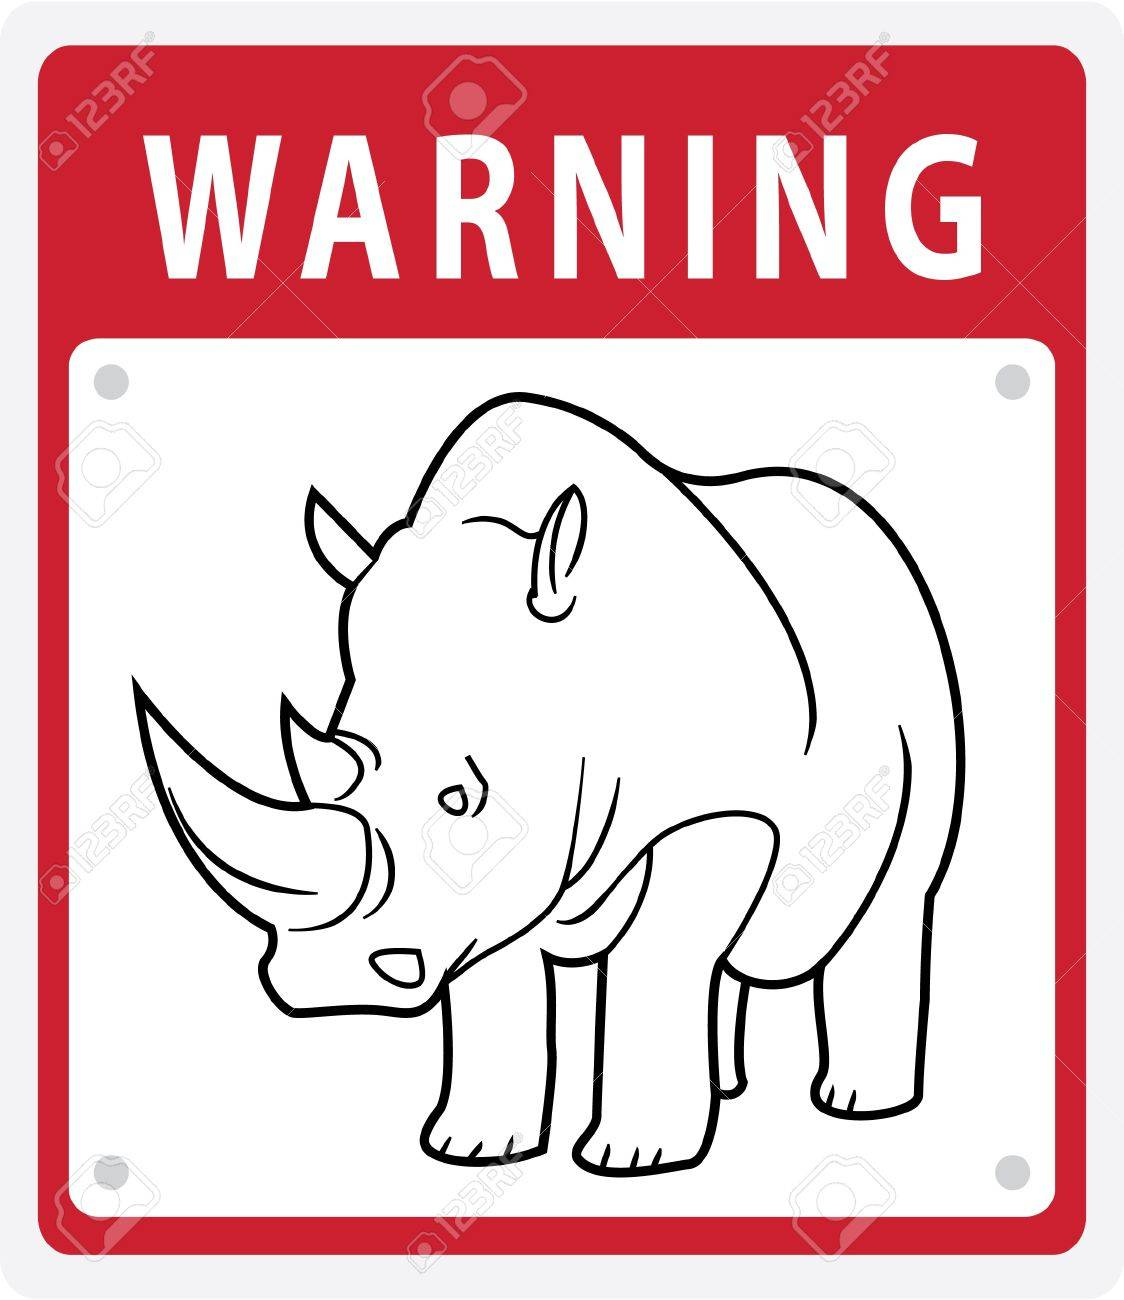 Rhino Warning Symbol Stock Vector - 17444736